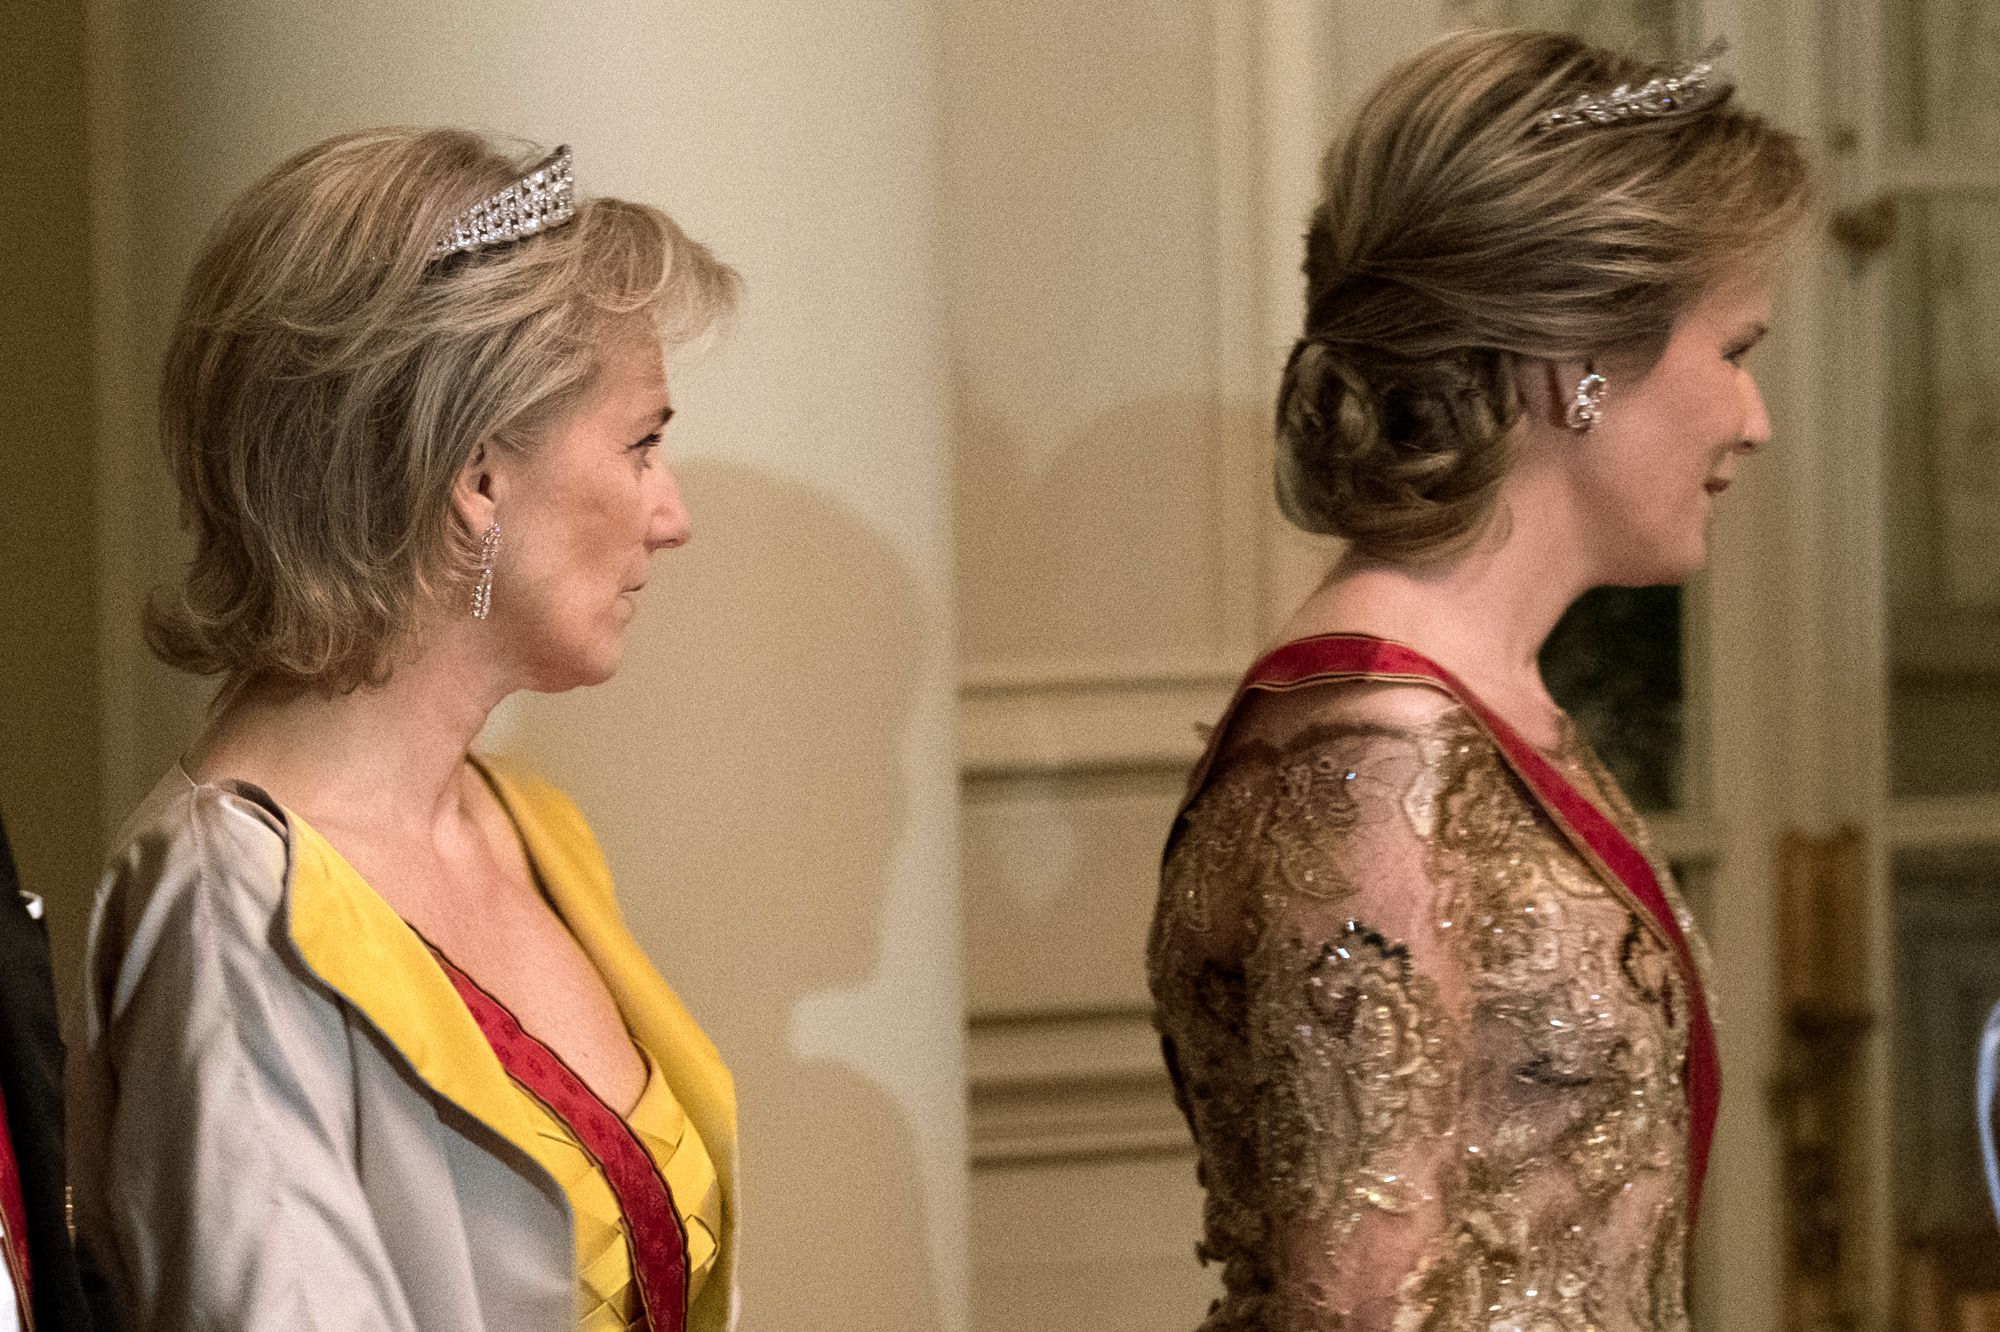 Princess Astrid with her sister-in-law, Mathilde